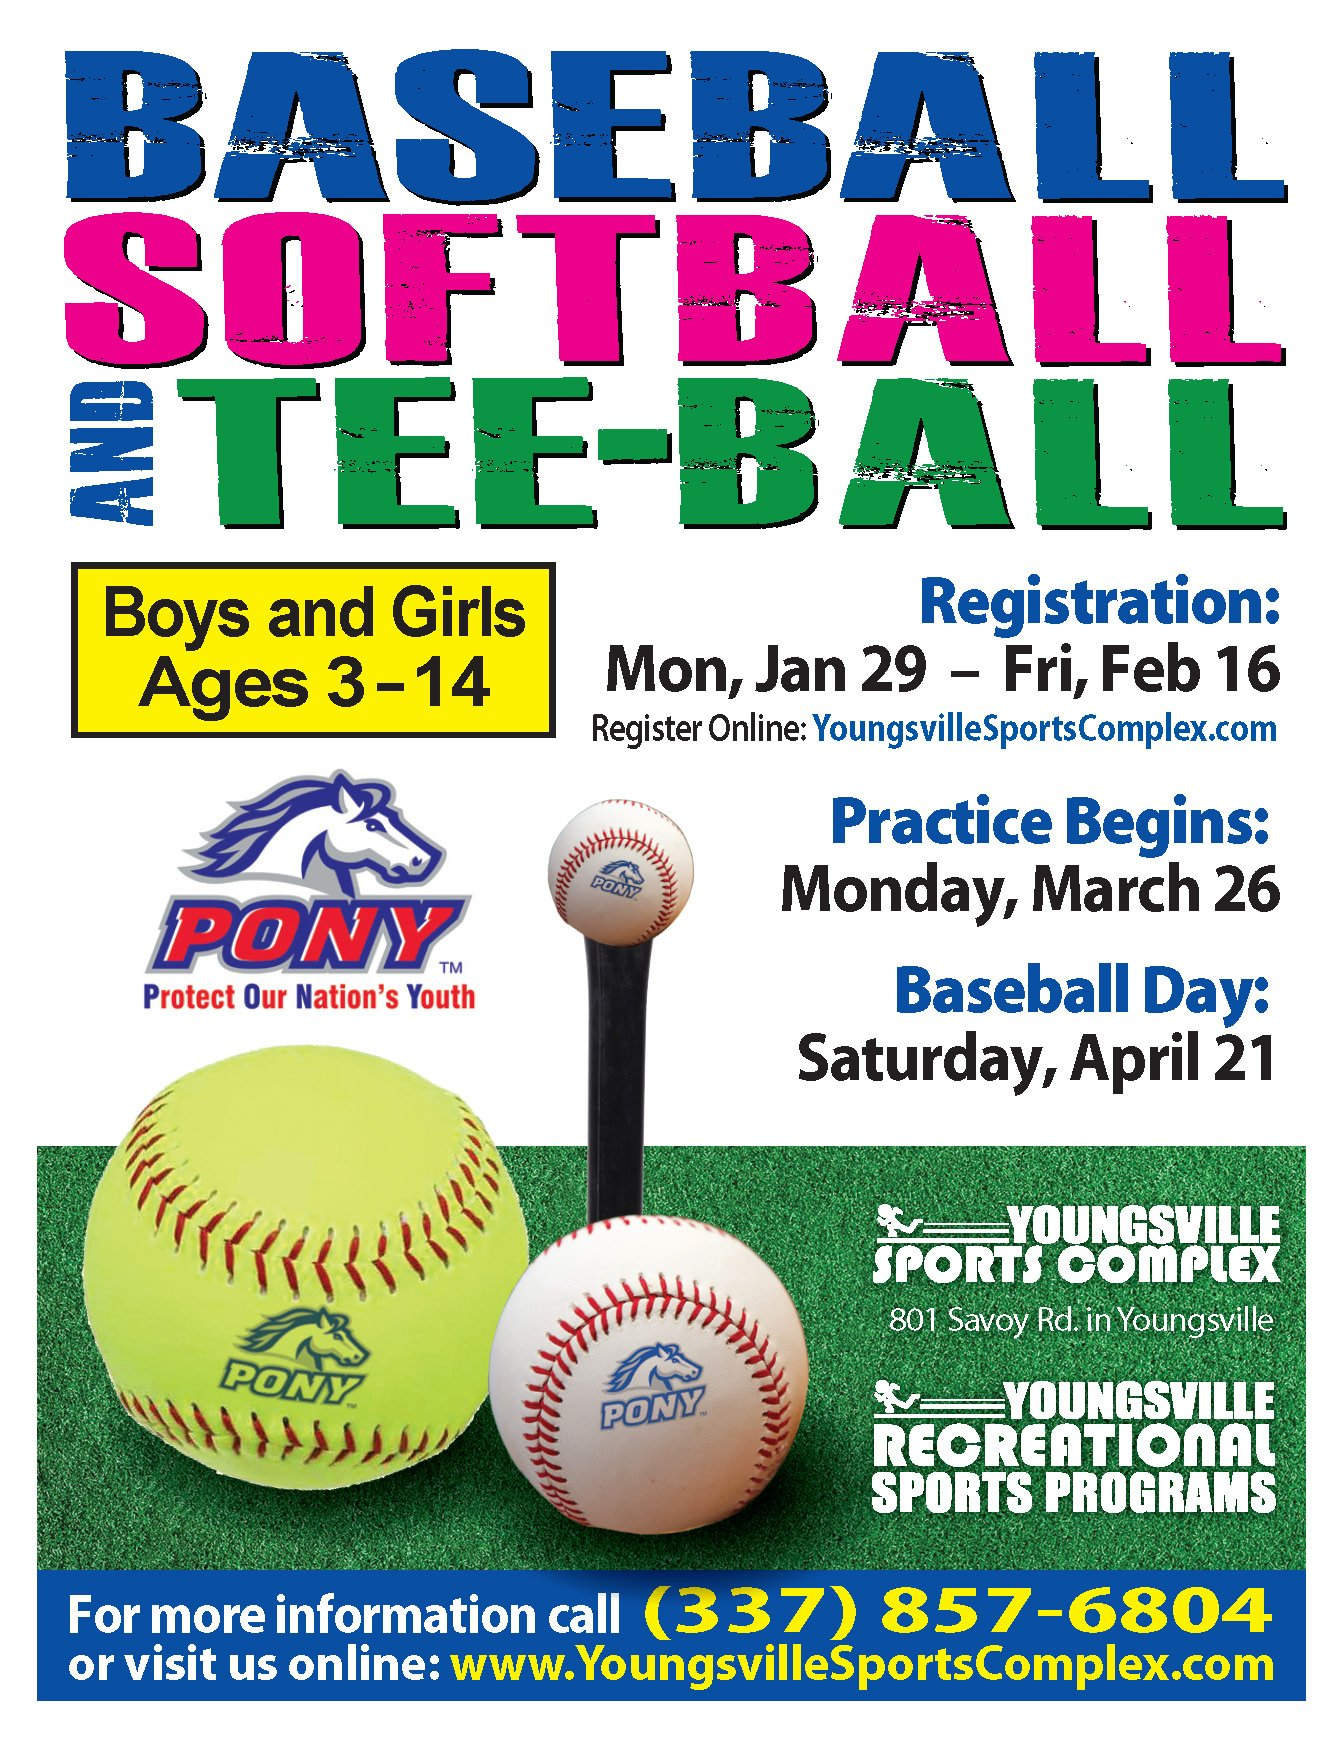 2018 Baseball, Softball & Tee-Ball Season